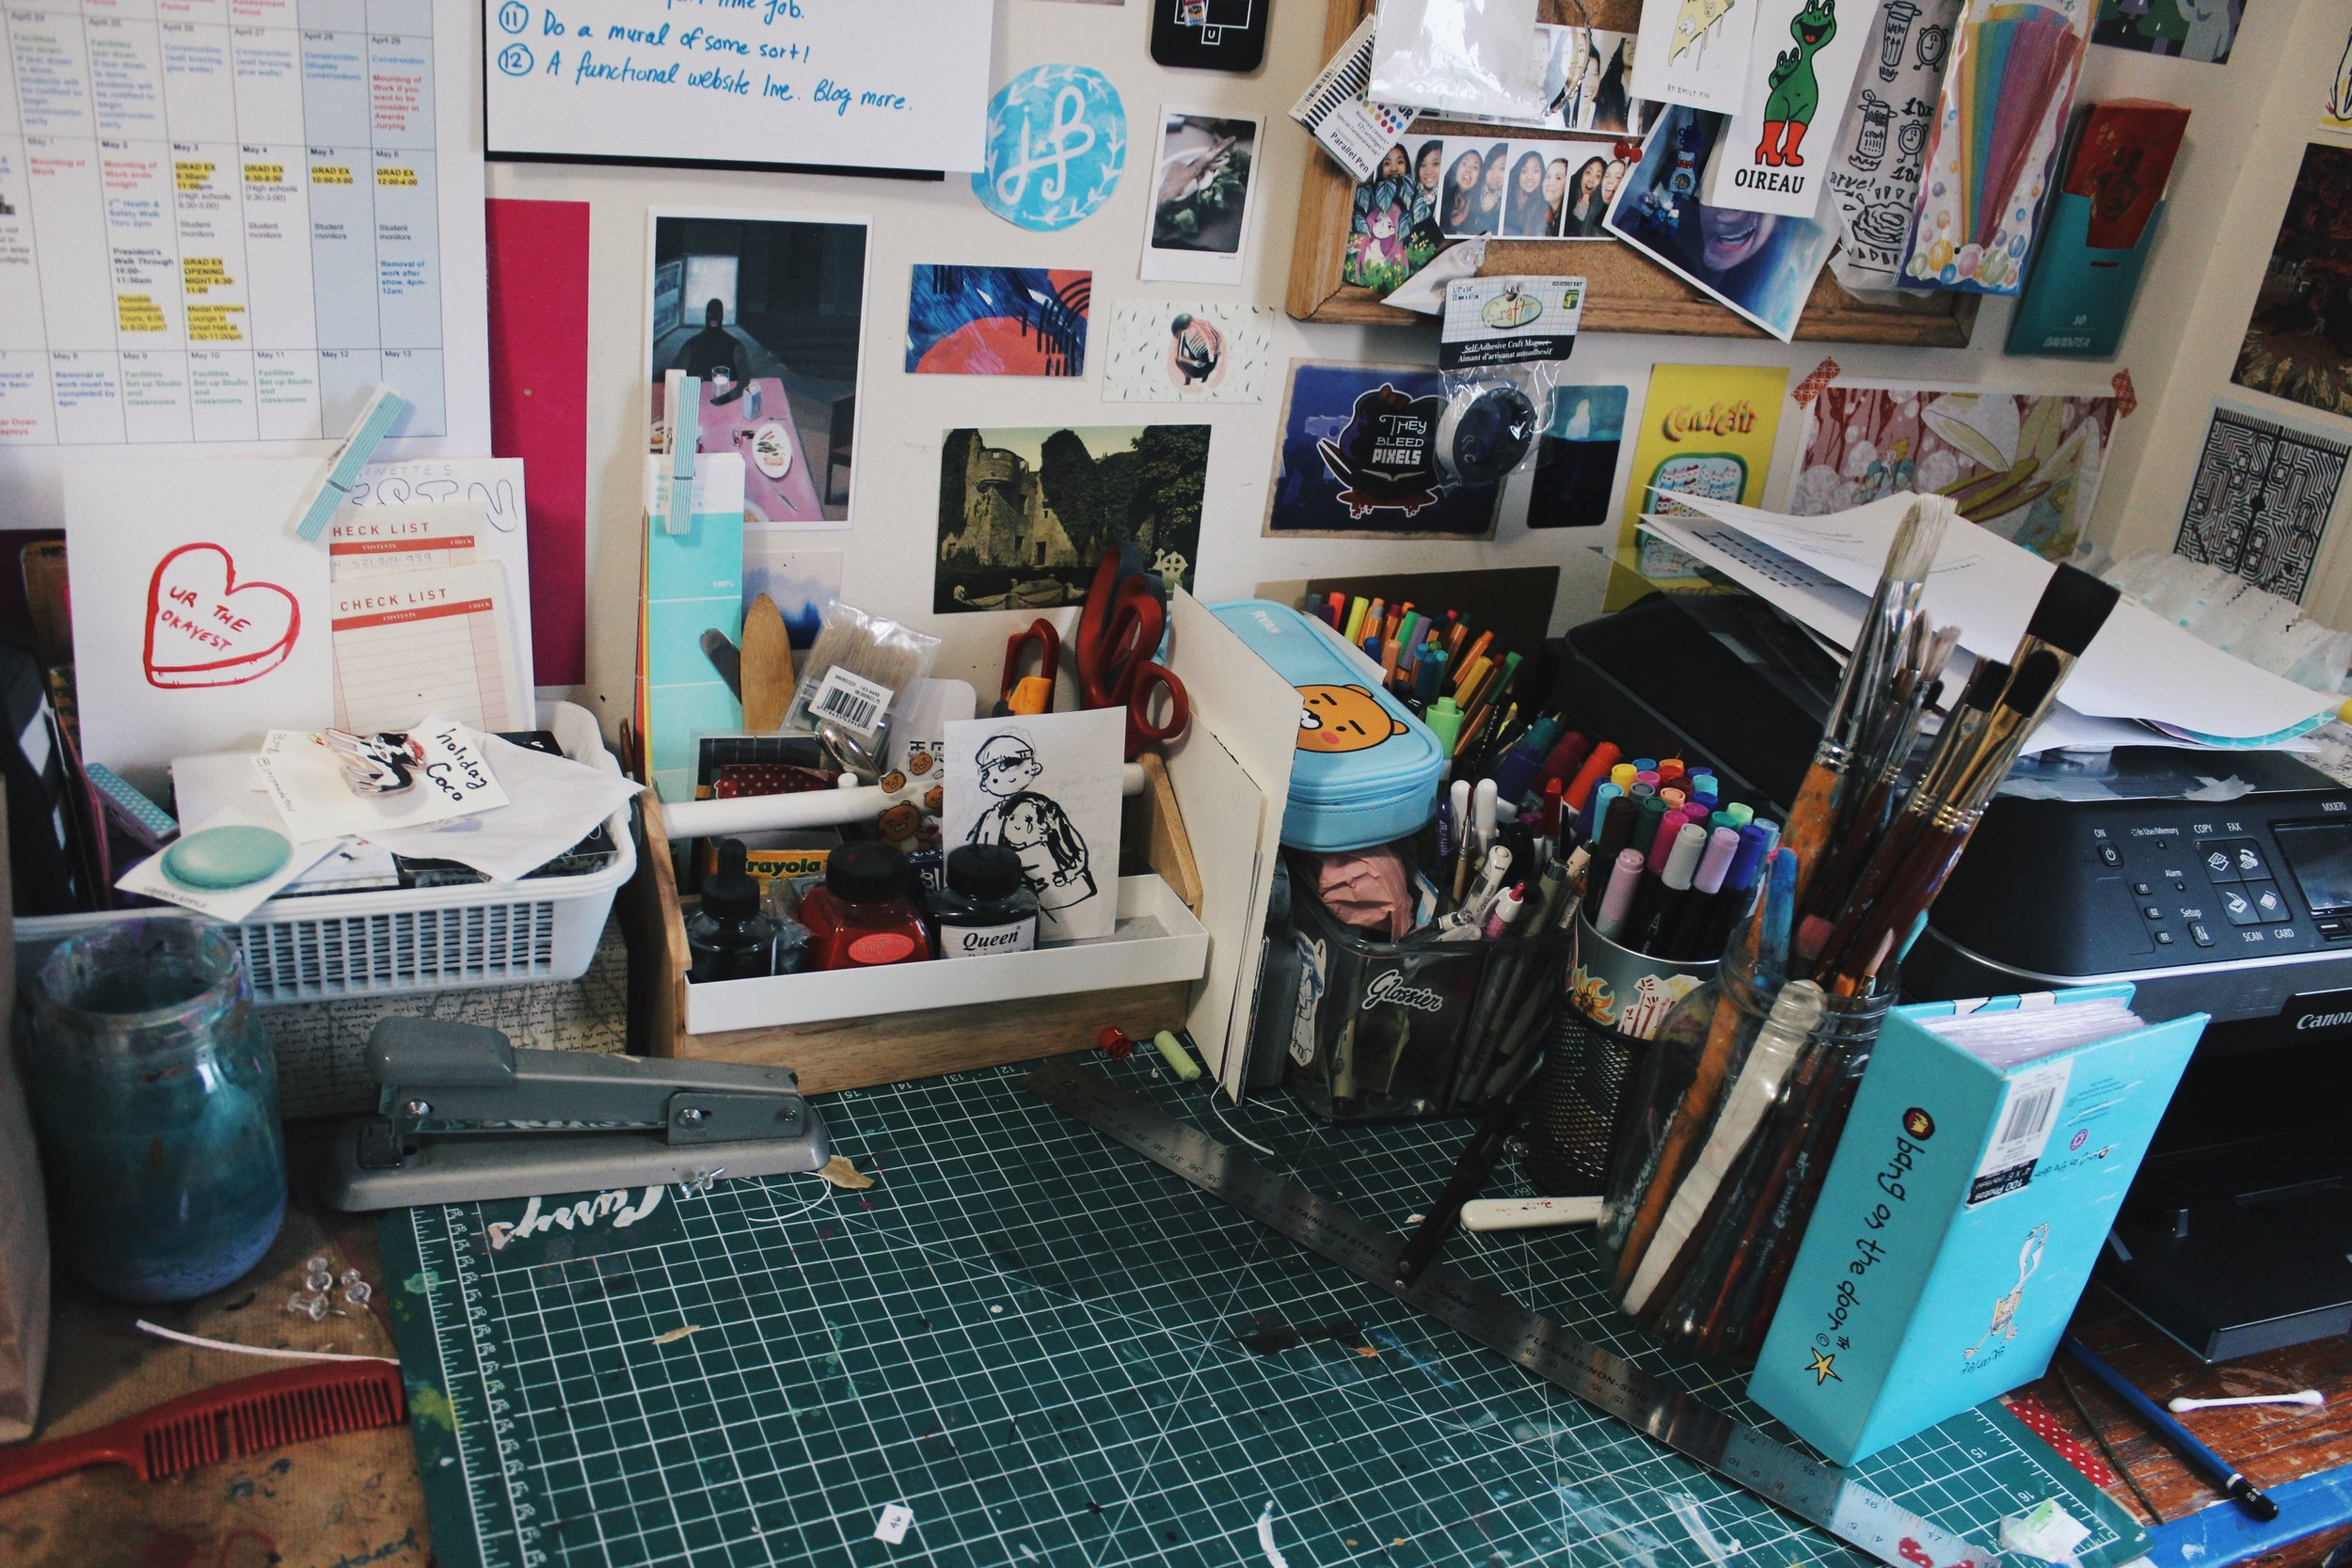 The empty space without anything on it? That's the actual workspace HA HA HA.